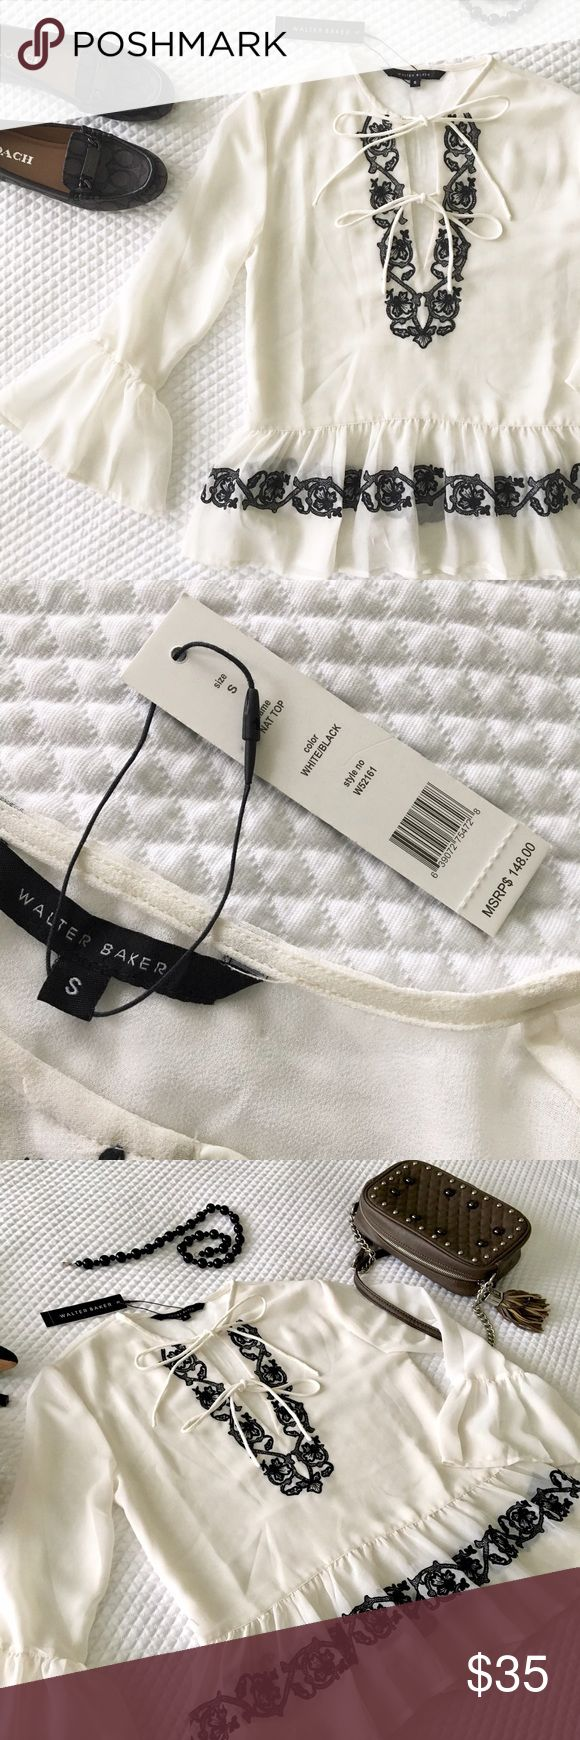 NWT Walter Baker Nat Blouse Beautiful, new white blouse with black embroidery from Walter Baker.  Size Small. Orig. price $148. I've uploaded photos of blouse on a model, but that's in a black color.  Please note tiny hole from where inventory control tag used to be, shown in photo of the closeup price tag.  [Shoes and Purse also for sale] Walter Baker Tops